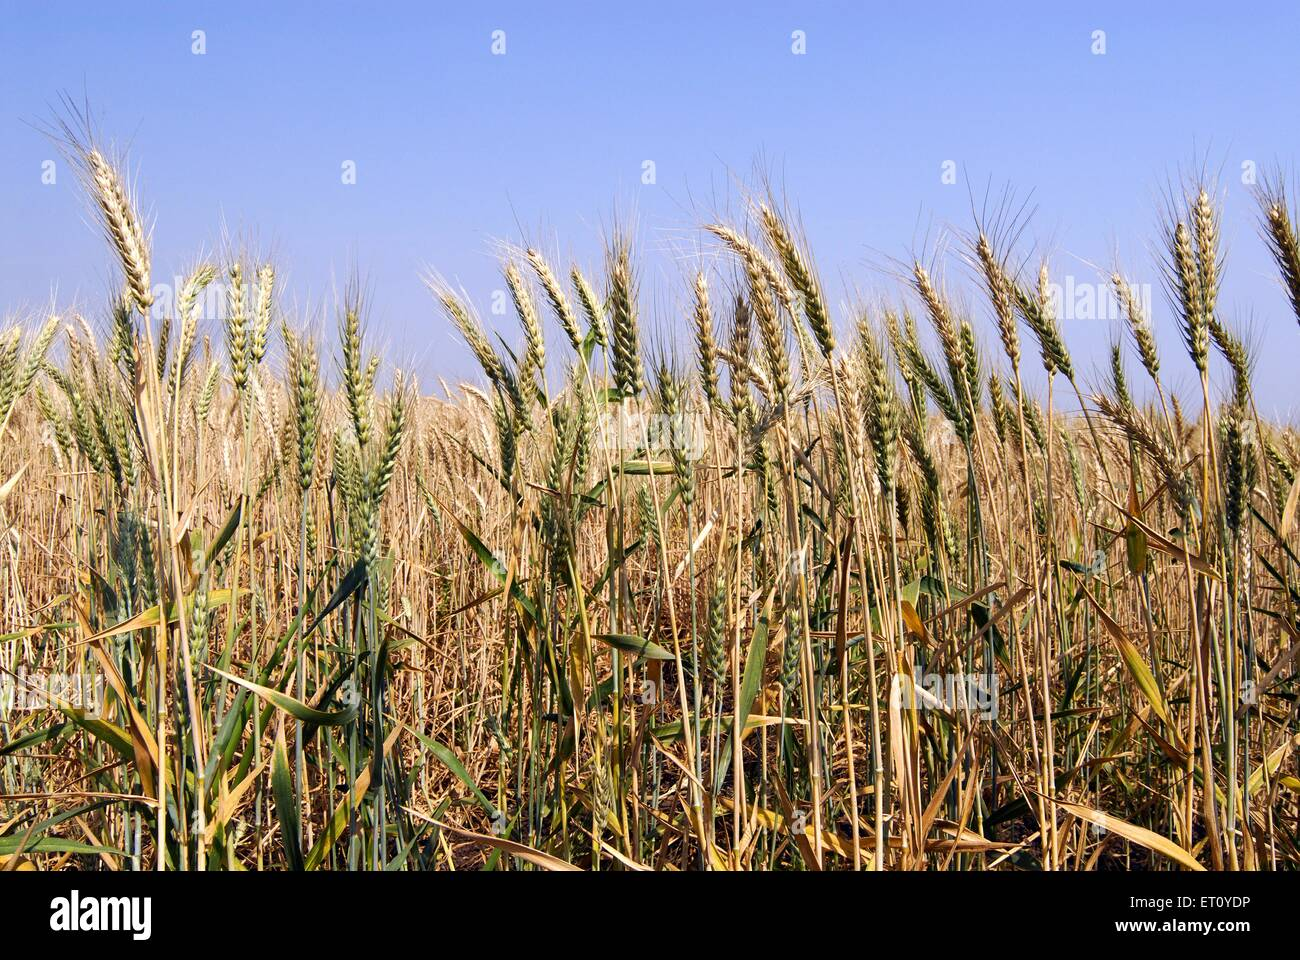 Spike of corns of wheat crop ready for harvesting ; village Urli Kanchan ; Pune ; Maharashtra ; India - Stock Image